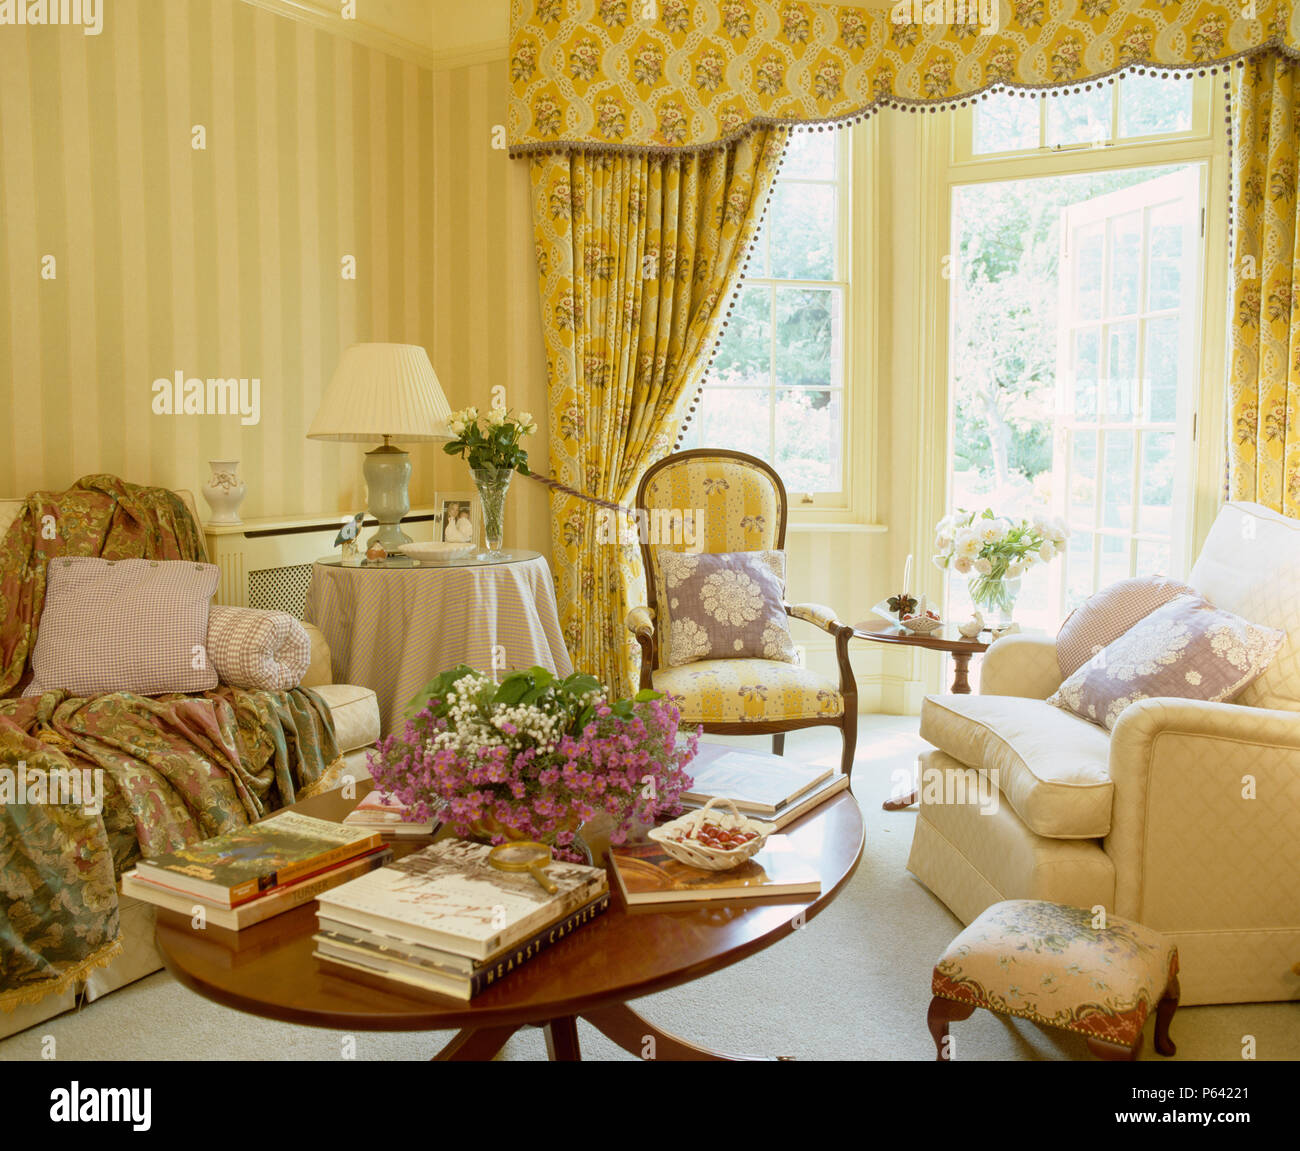 Pierre Frey curtains on French windows in country living room with ...